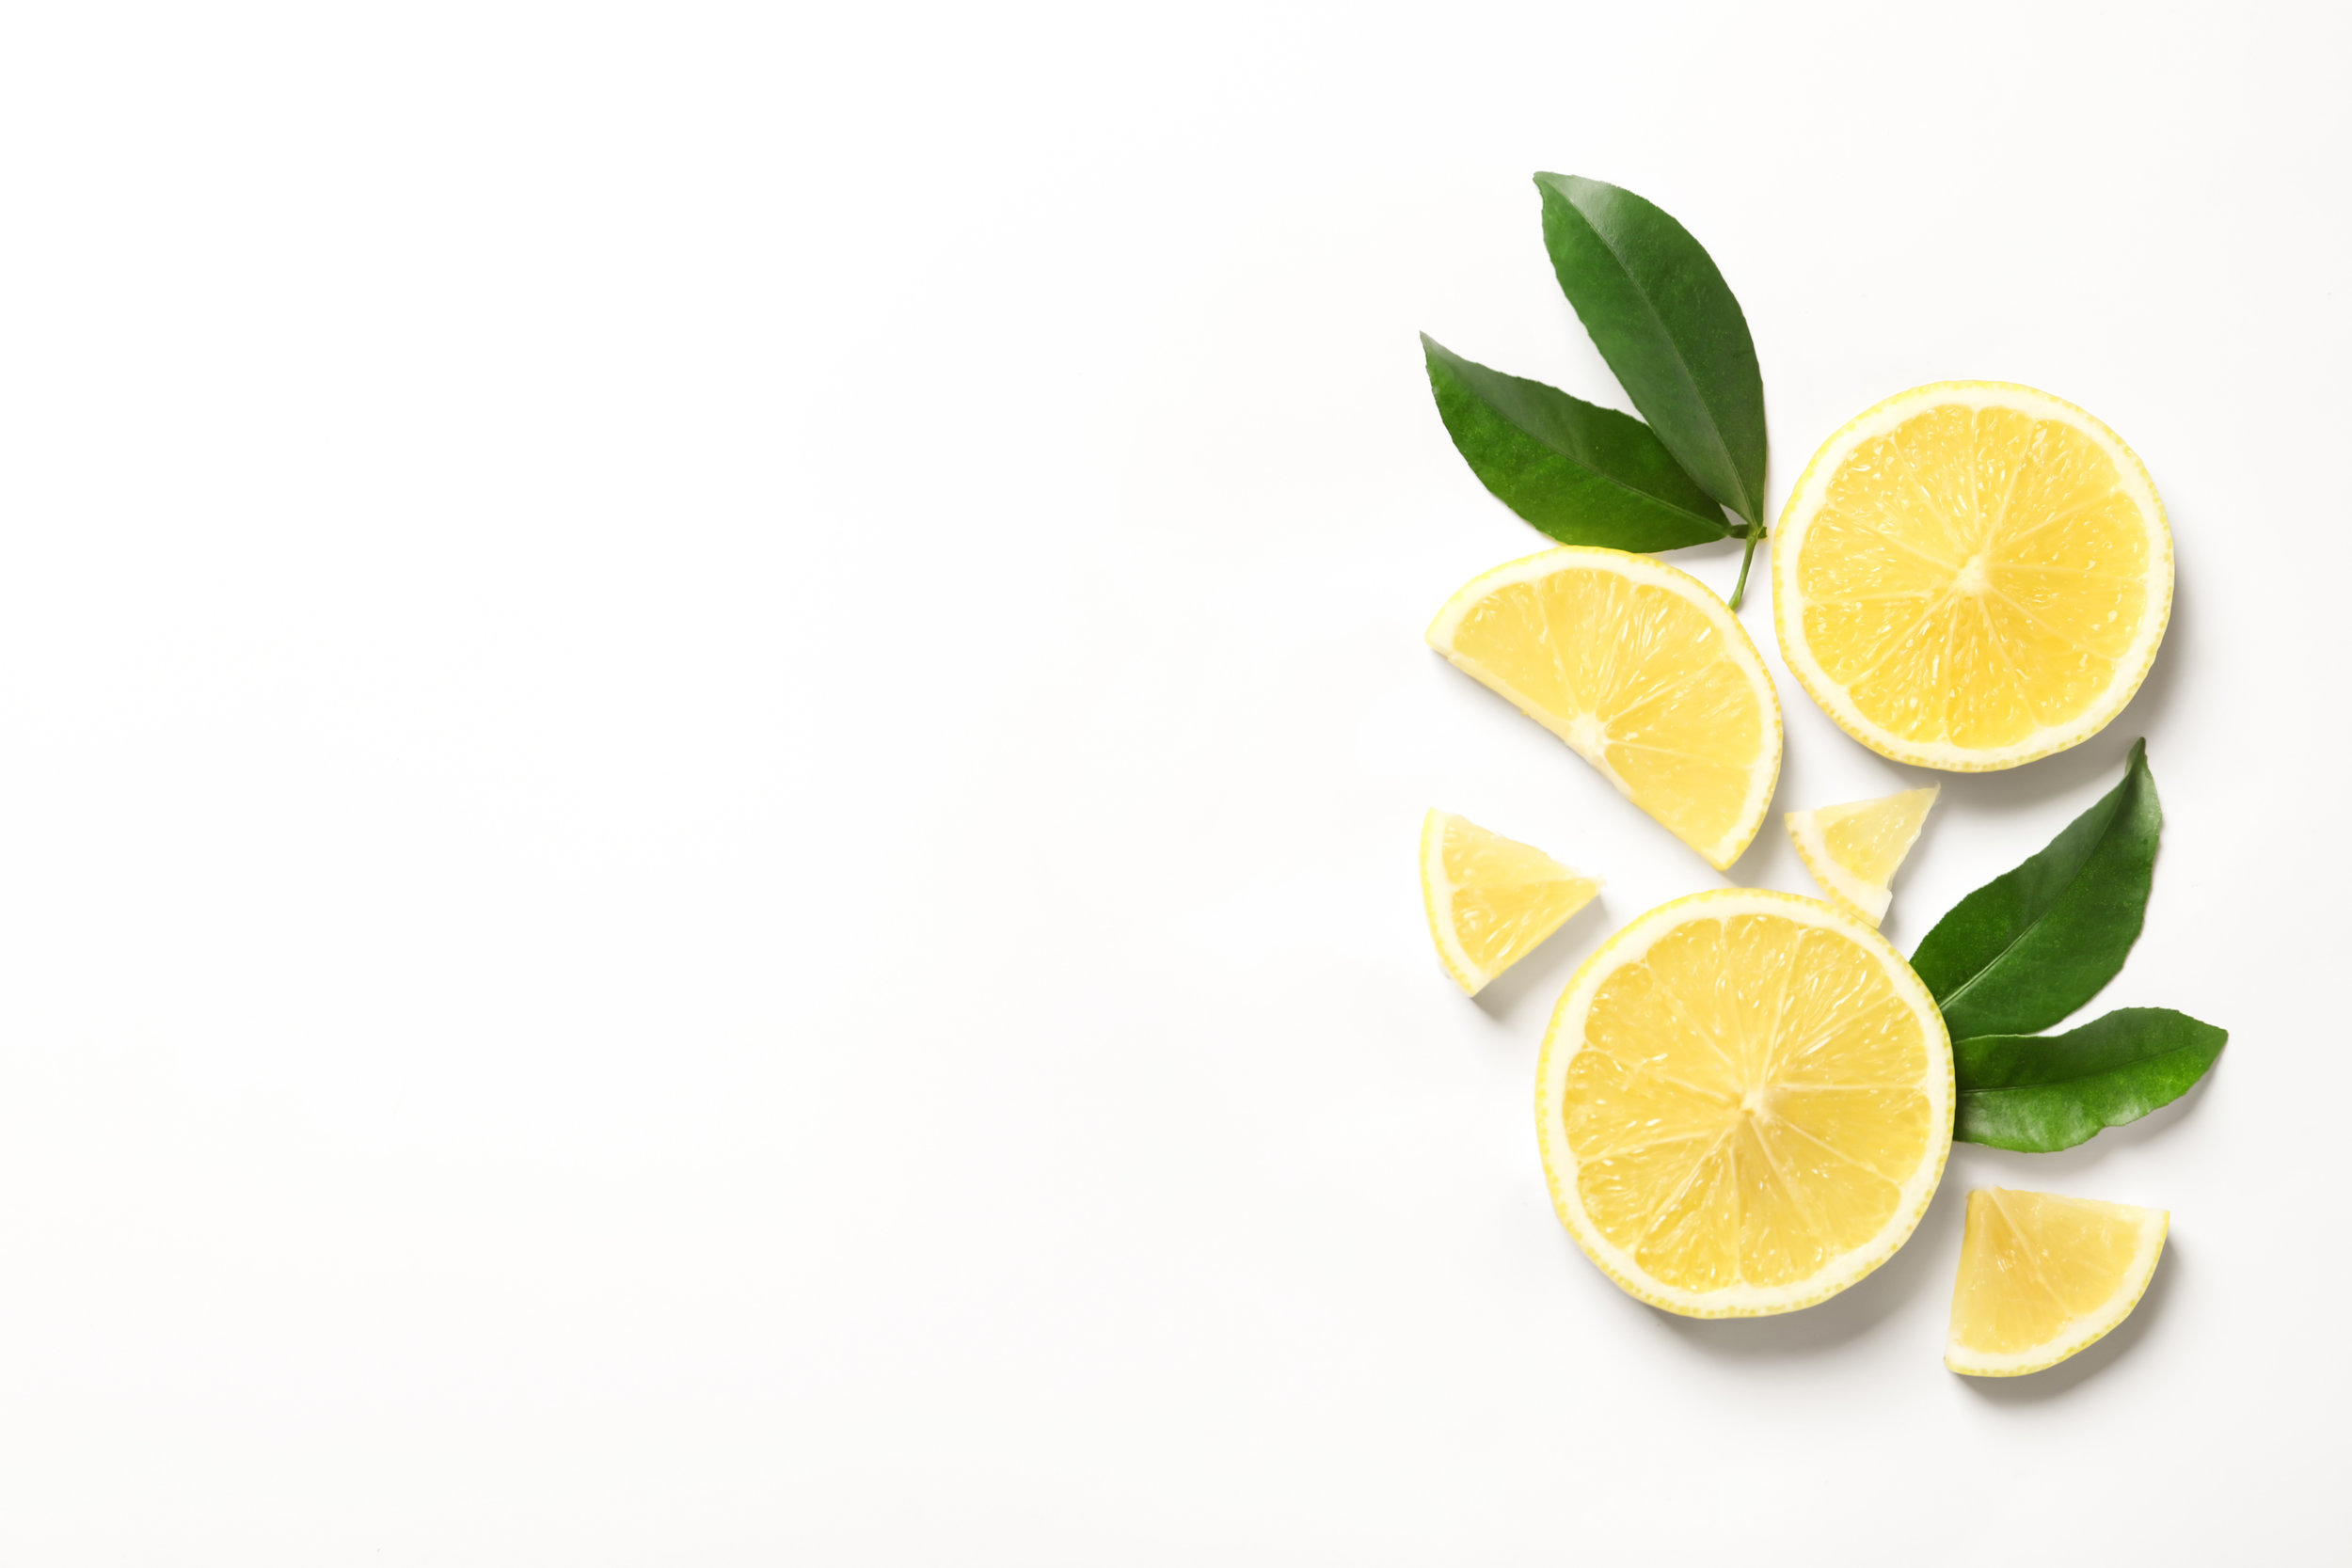 Lemon Peel Extract - Enhances The Skin. Lemon peel may help to enhance the clarity, glow and softness of the skin. Use lemon peel to rub on dry or scaly skin to regain its smoothness and softness. Lemon peel contains citric and plant acids that work to cleanse, lighten and brighten the skin; remove dead skin; and stimulate new skin growth.